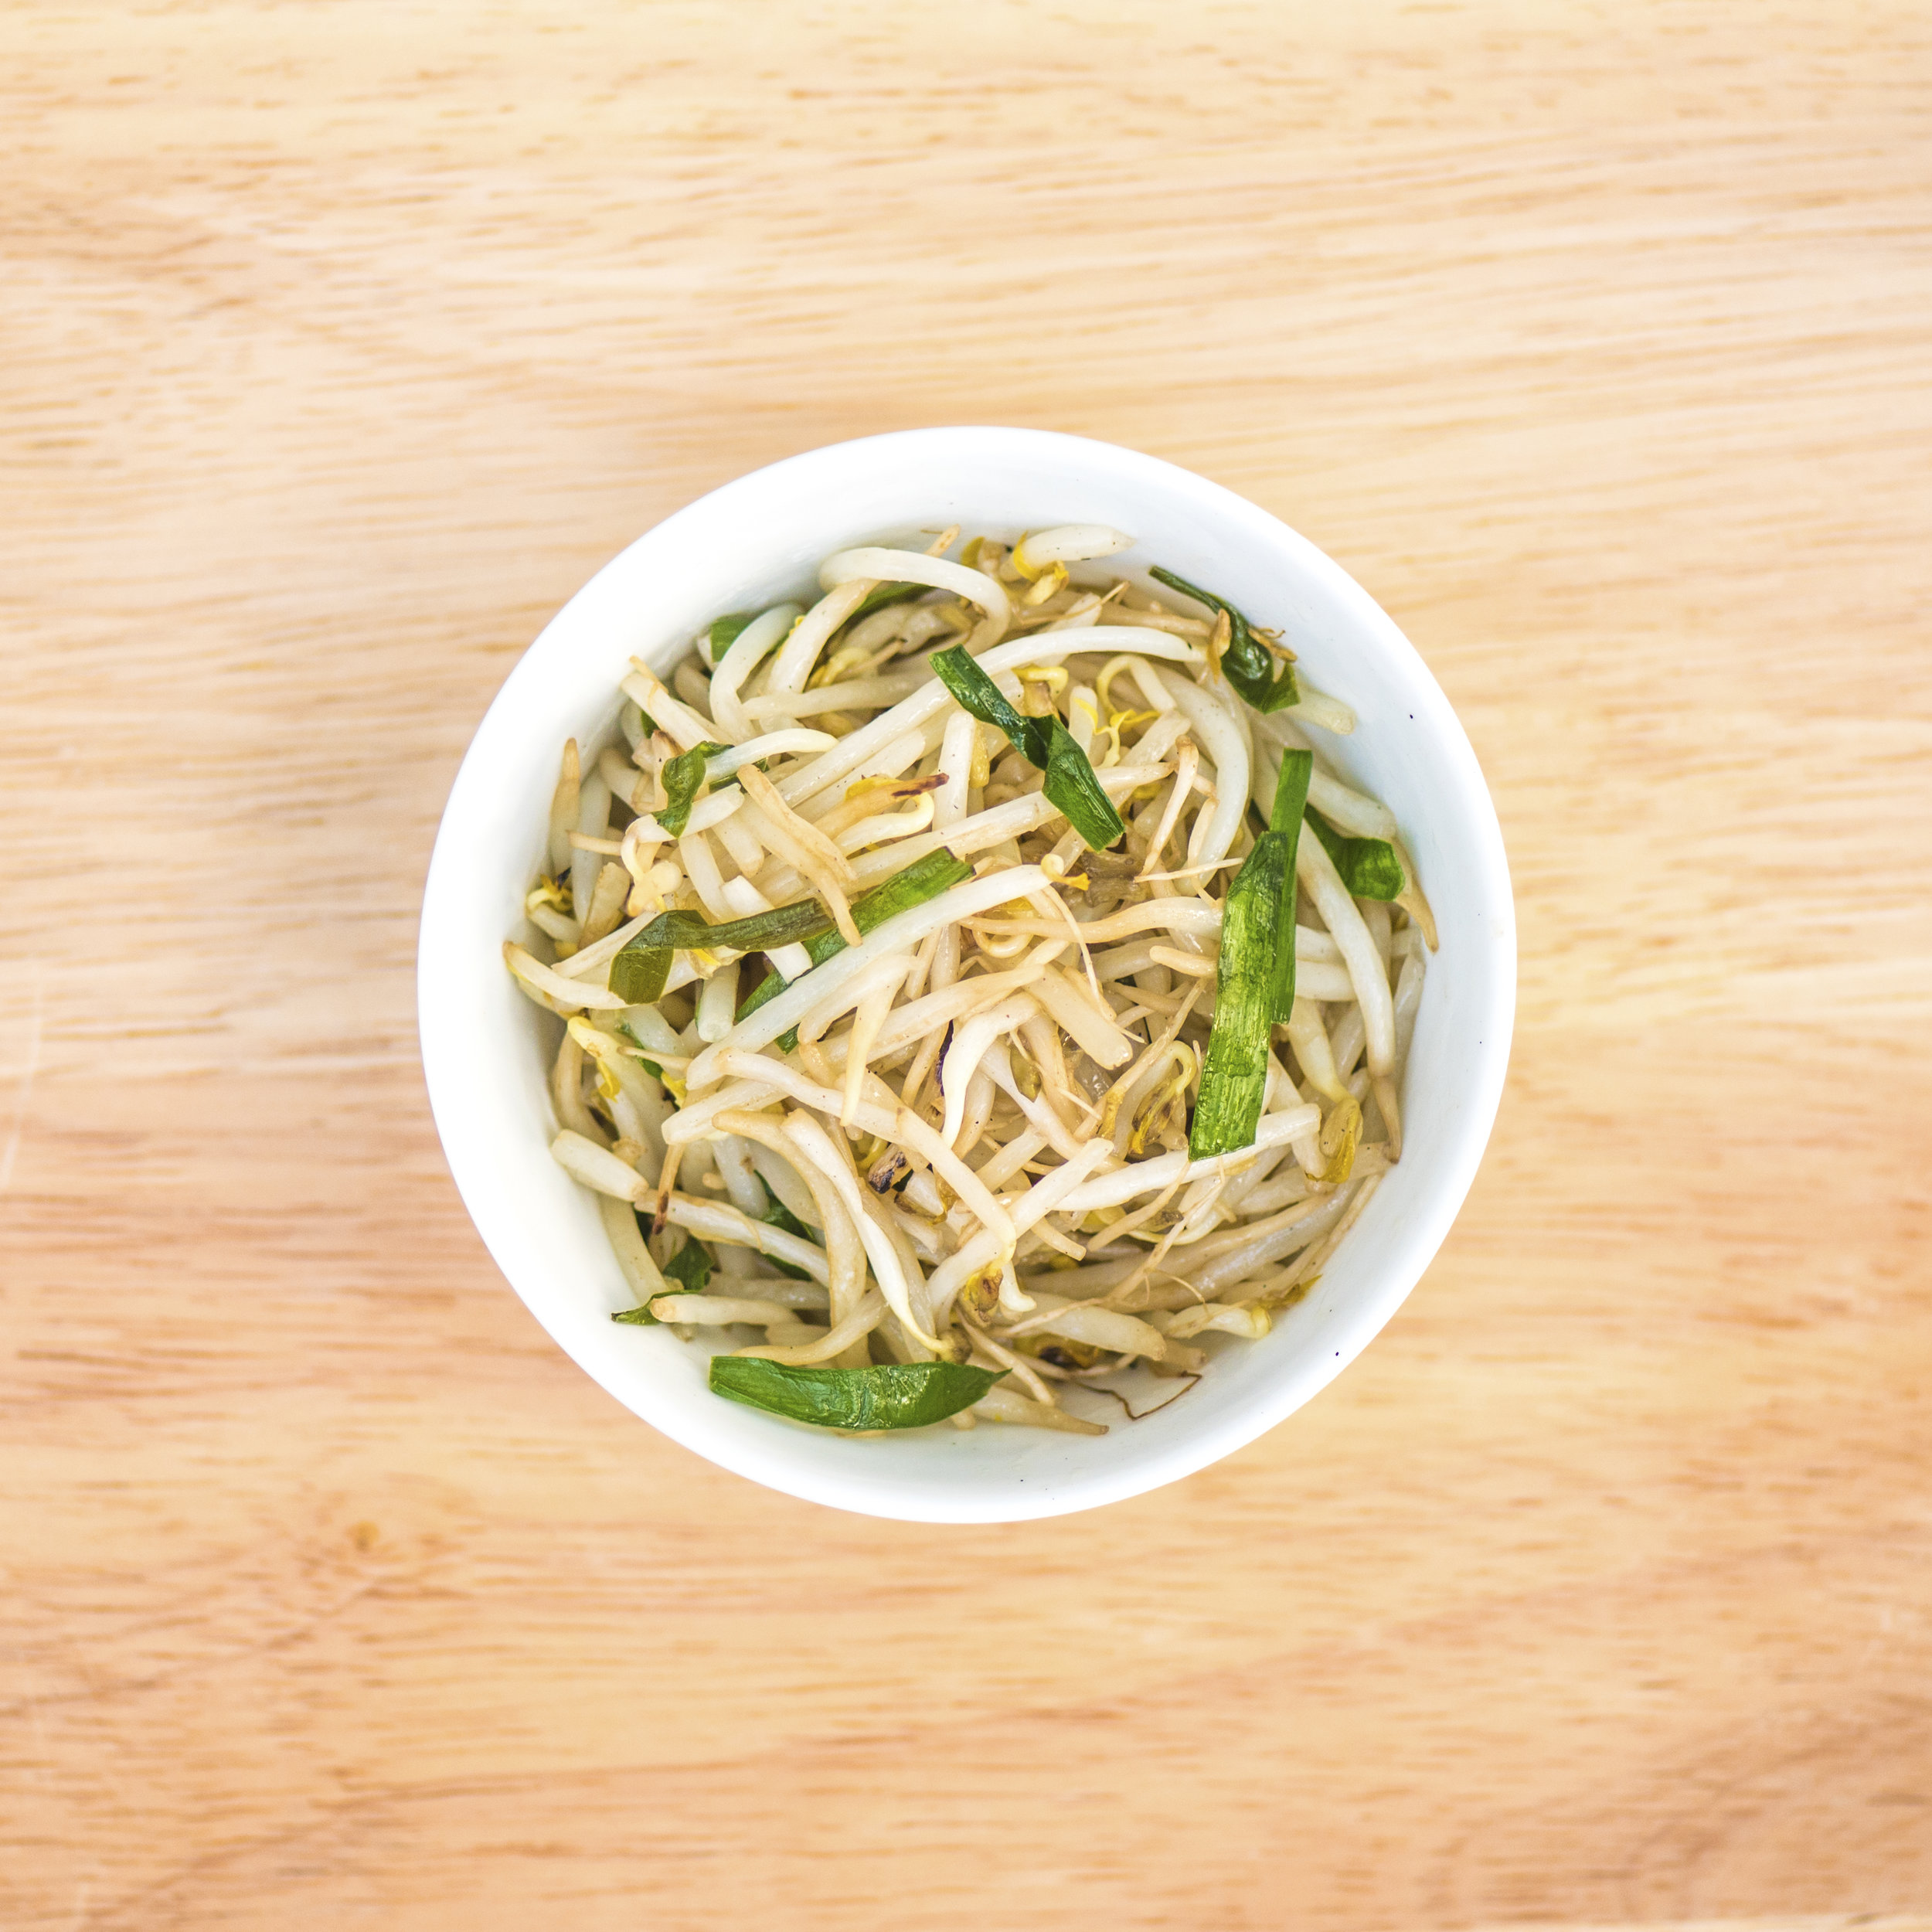 beansprouts   Stir-fried with Chinese chives with a little white pepper and rice vinegar, in a wok. For most chun bings, we recommend having beansprouts as a base.